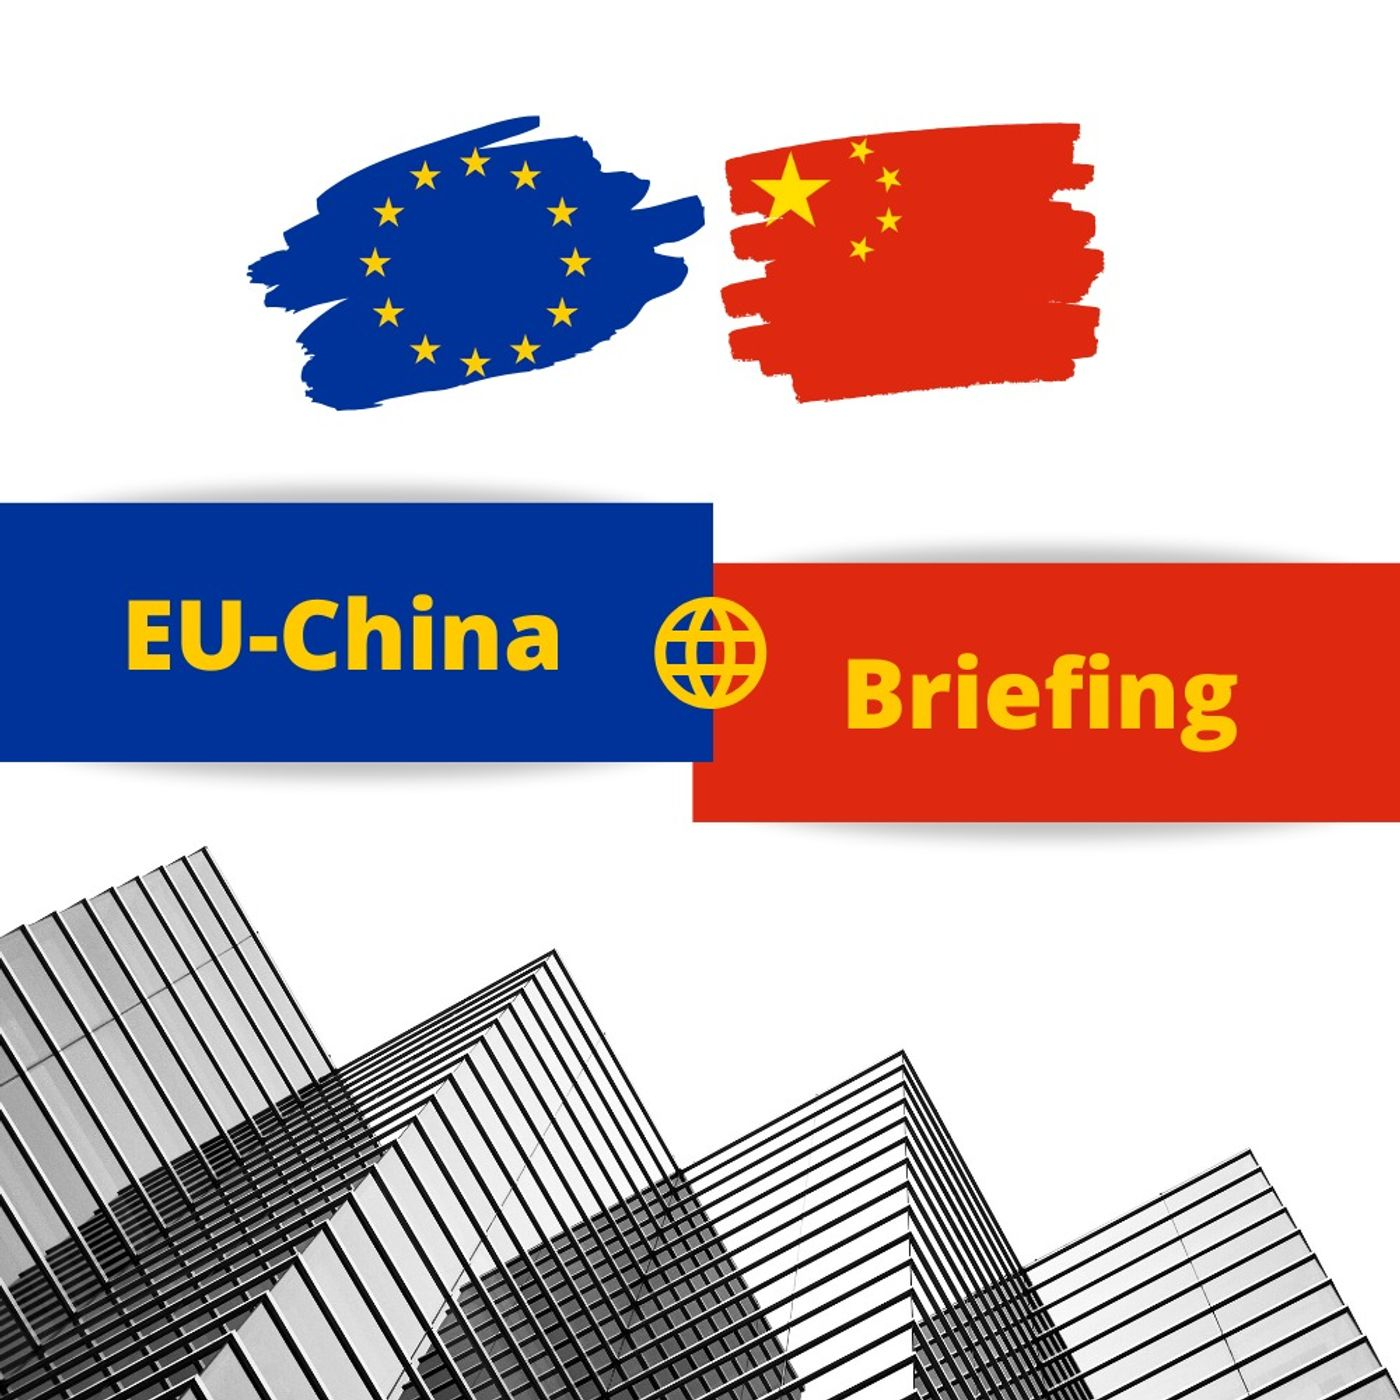 EU-China Briefing - 3 August 2020